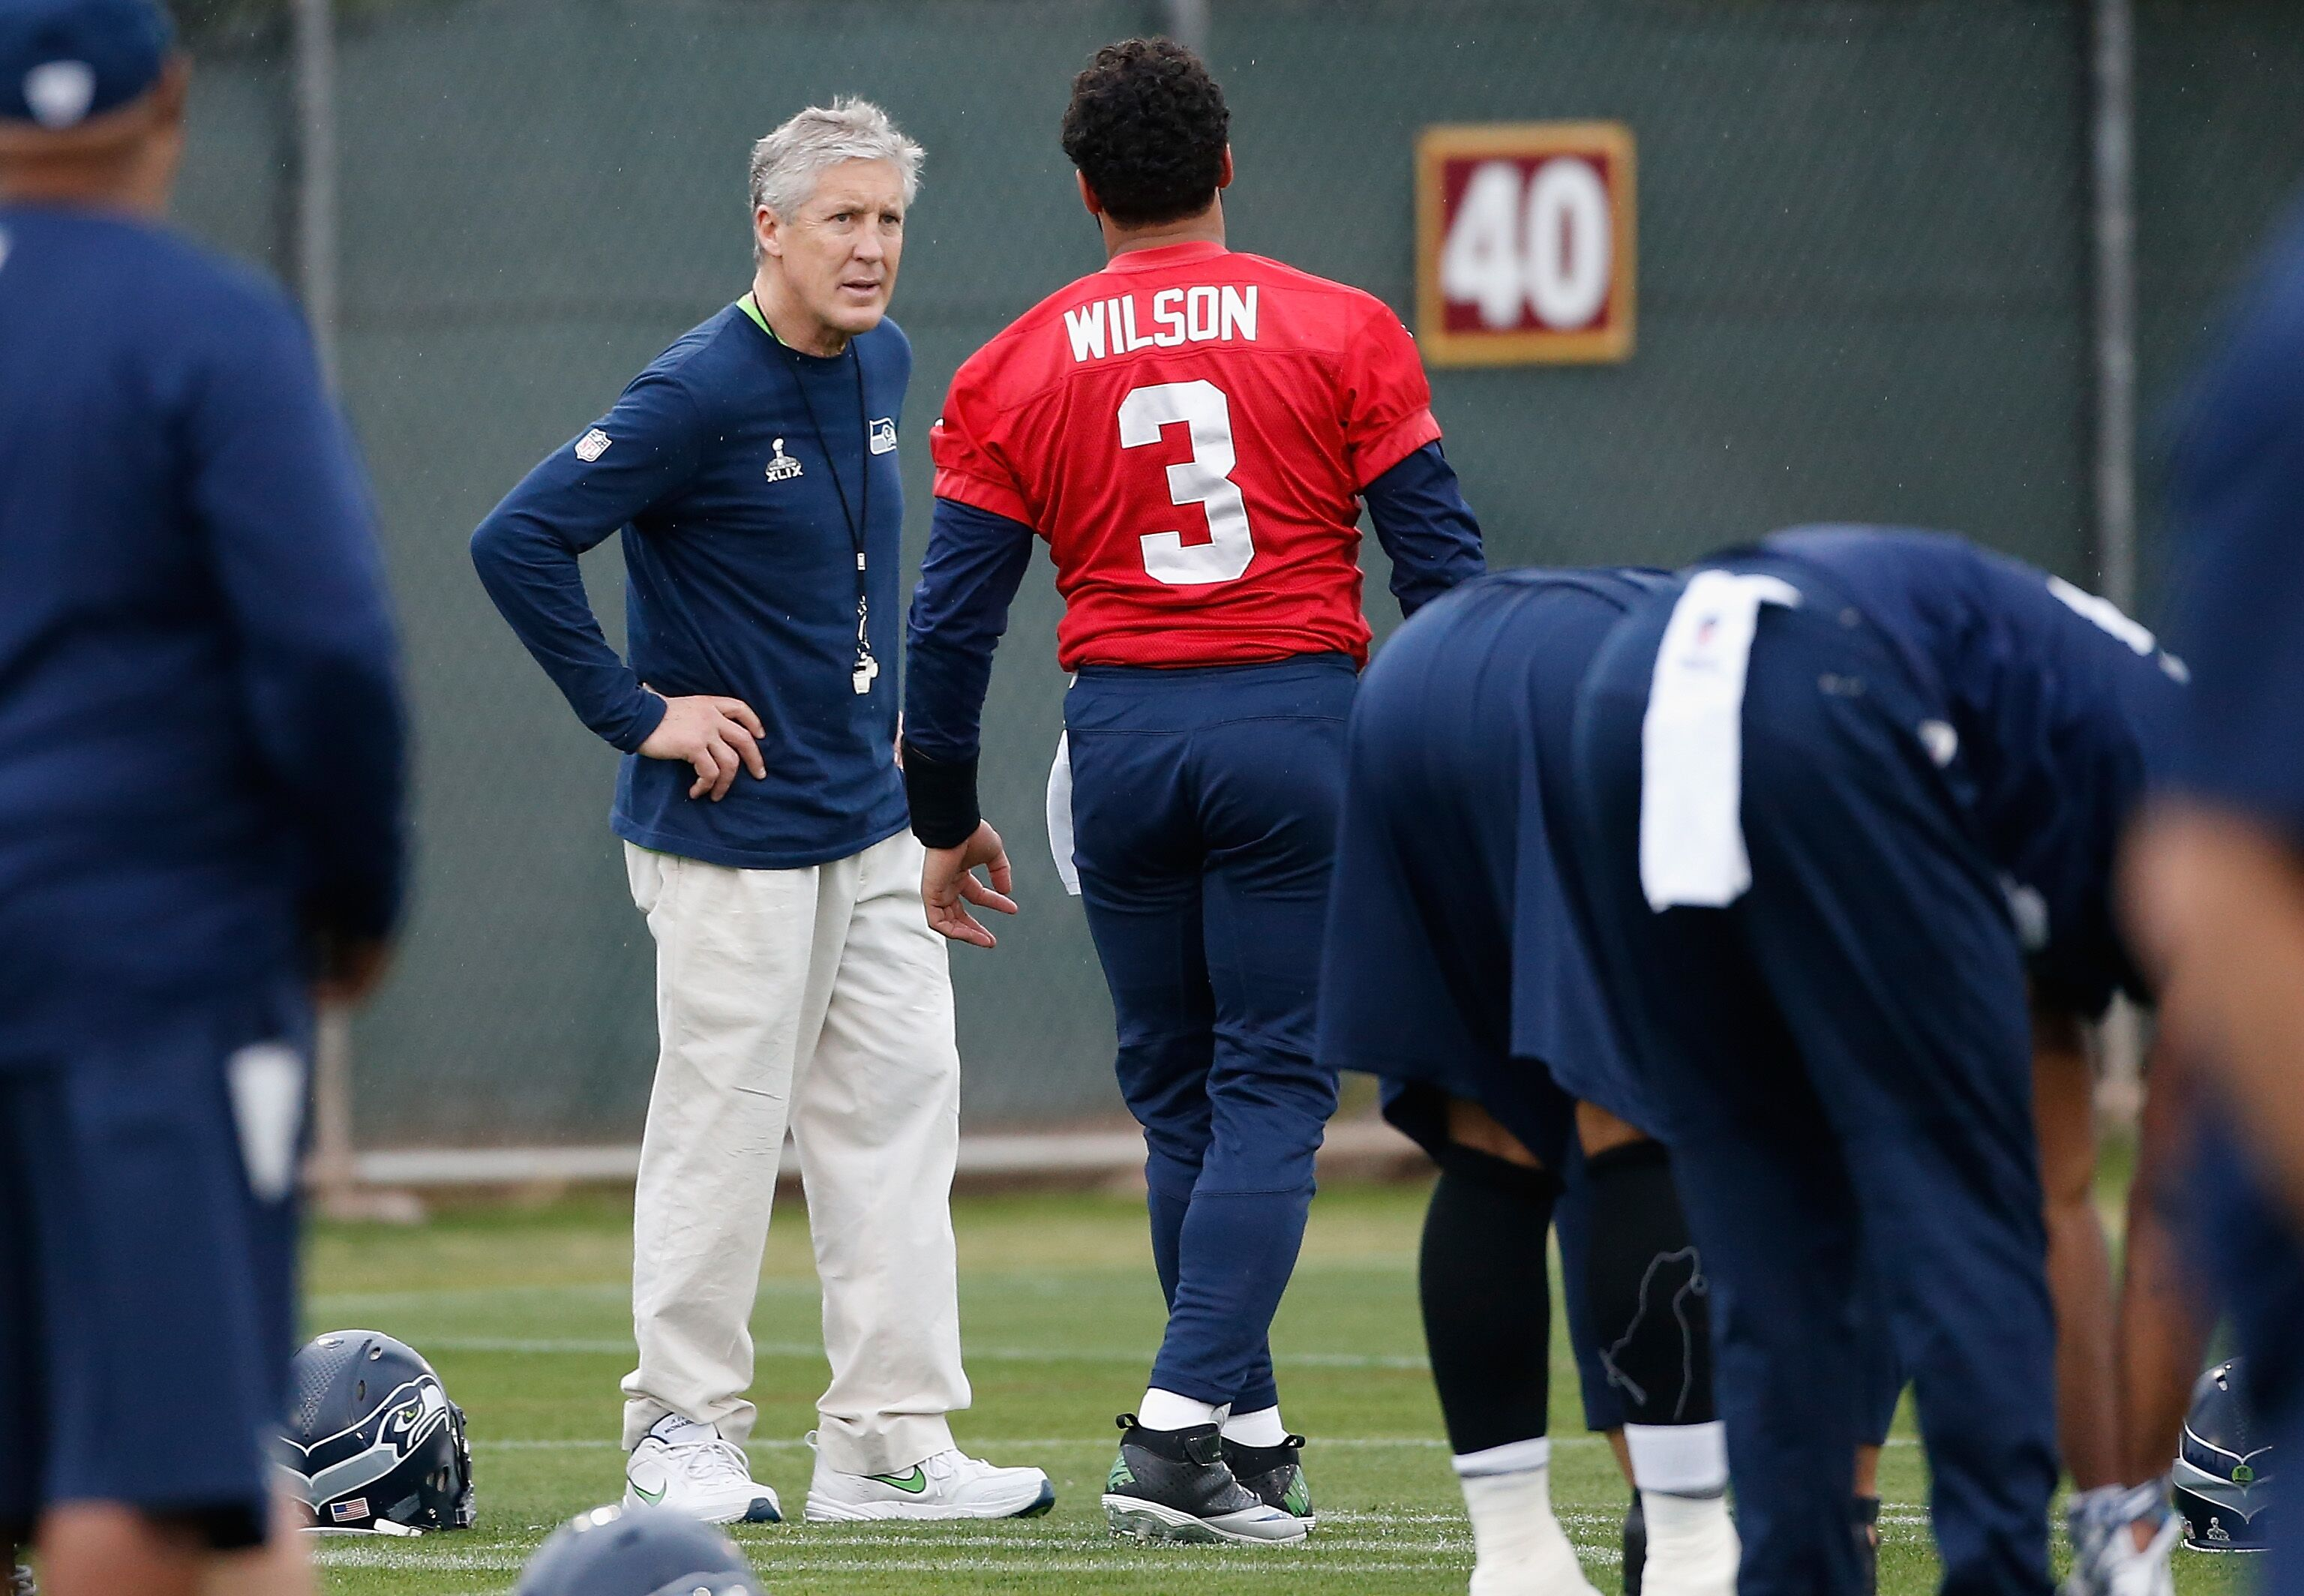 Seahawks training camp includes dates open to fans